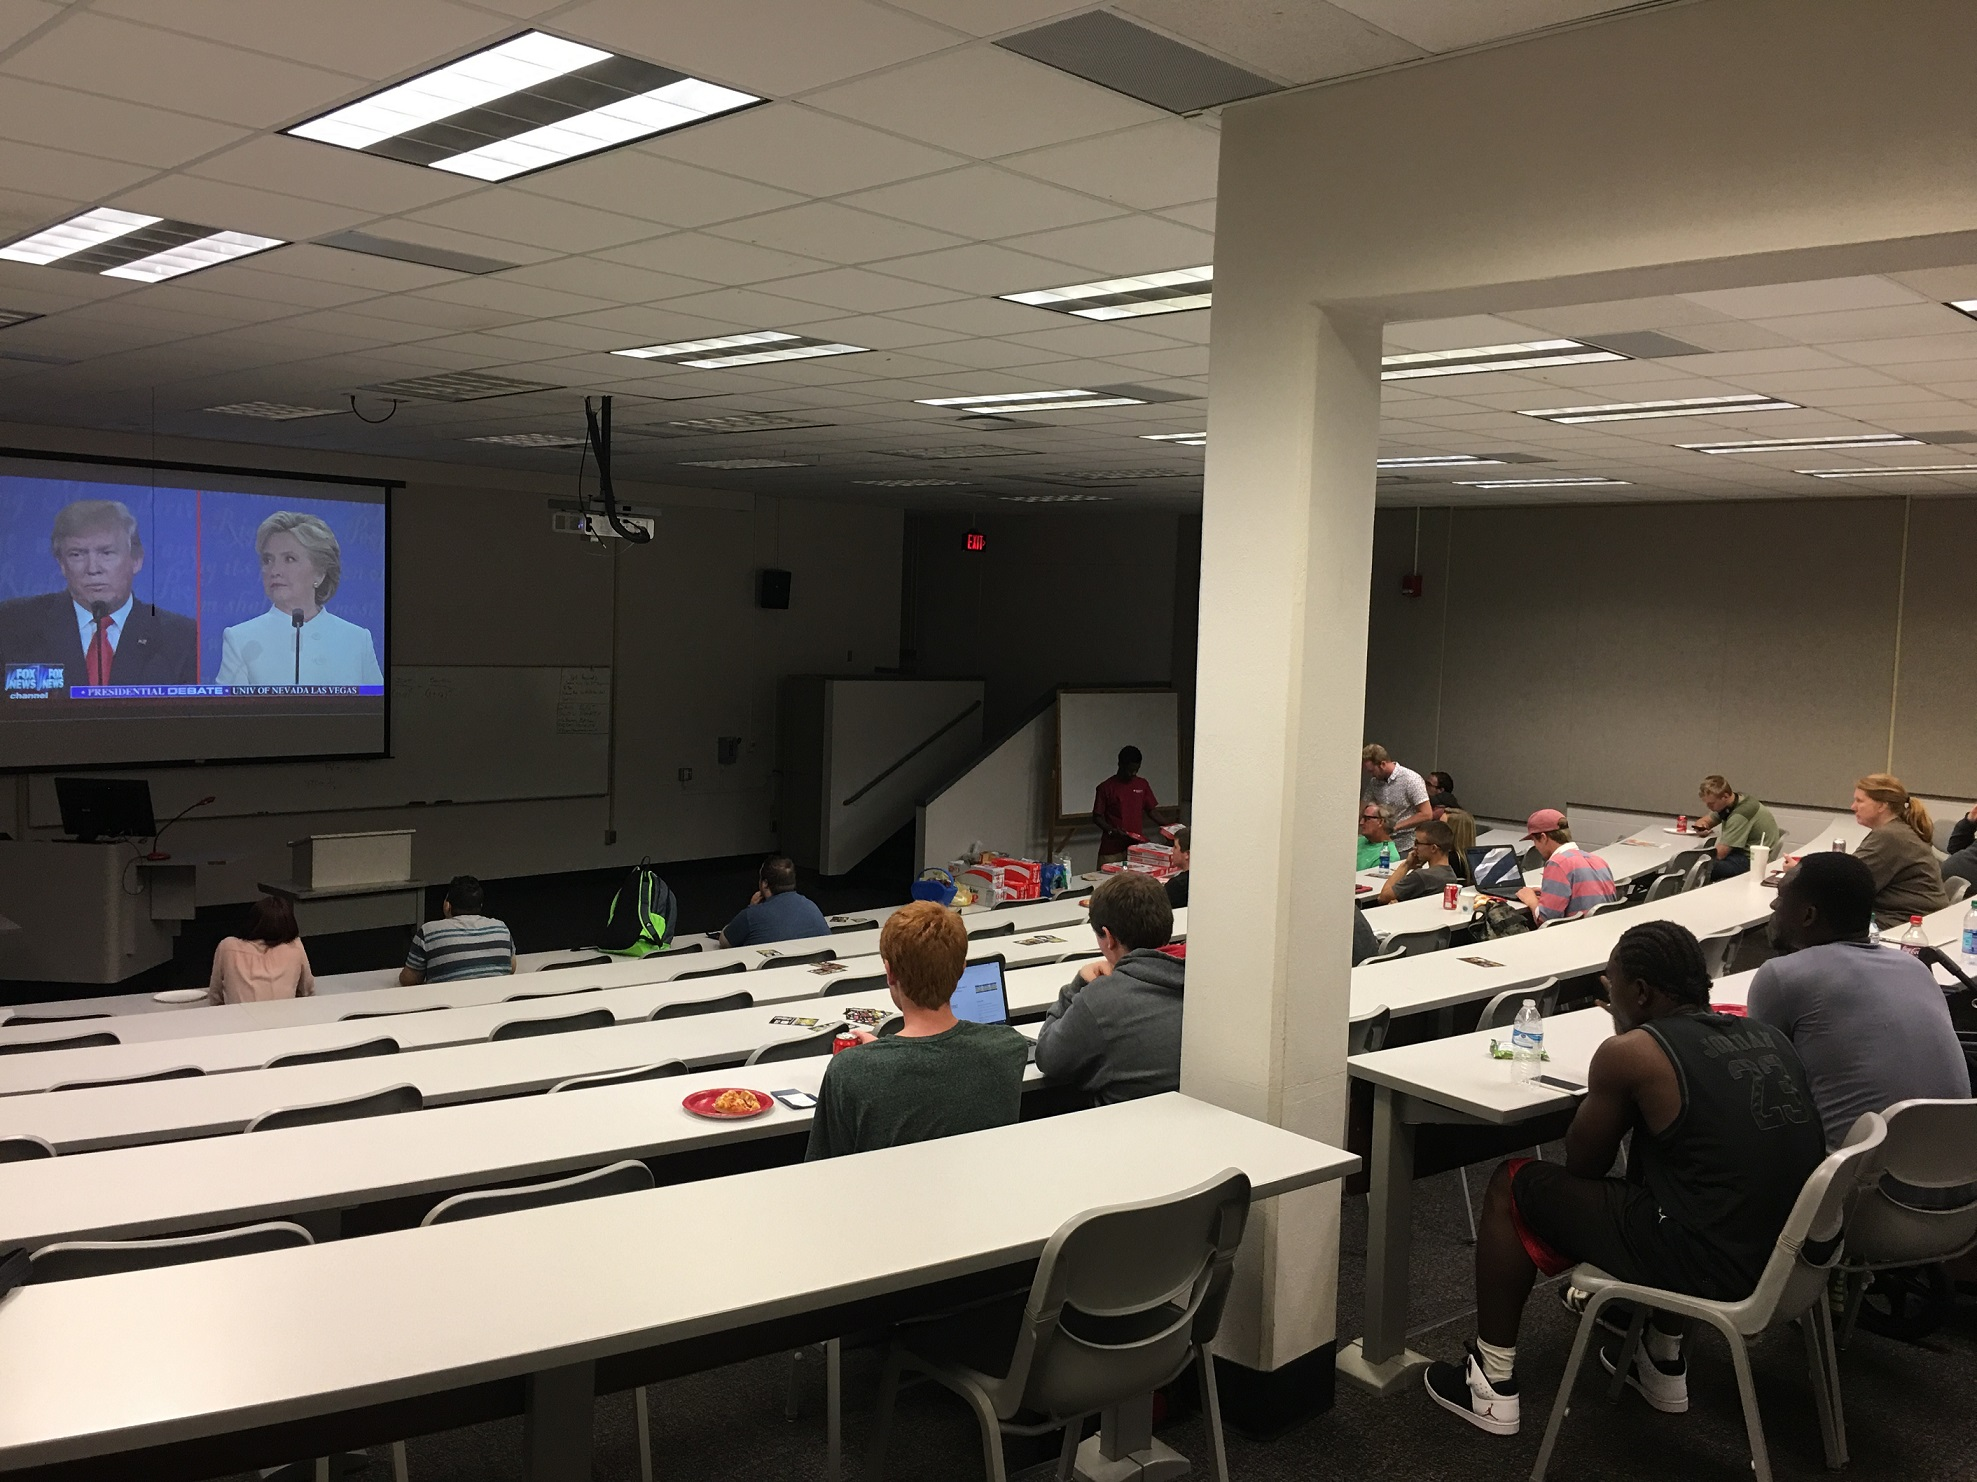 The+entire+room+of+students+watching+the+final+presidential+debate+before+Nov.+8.+